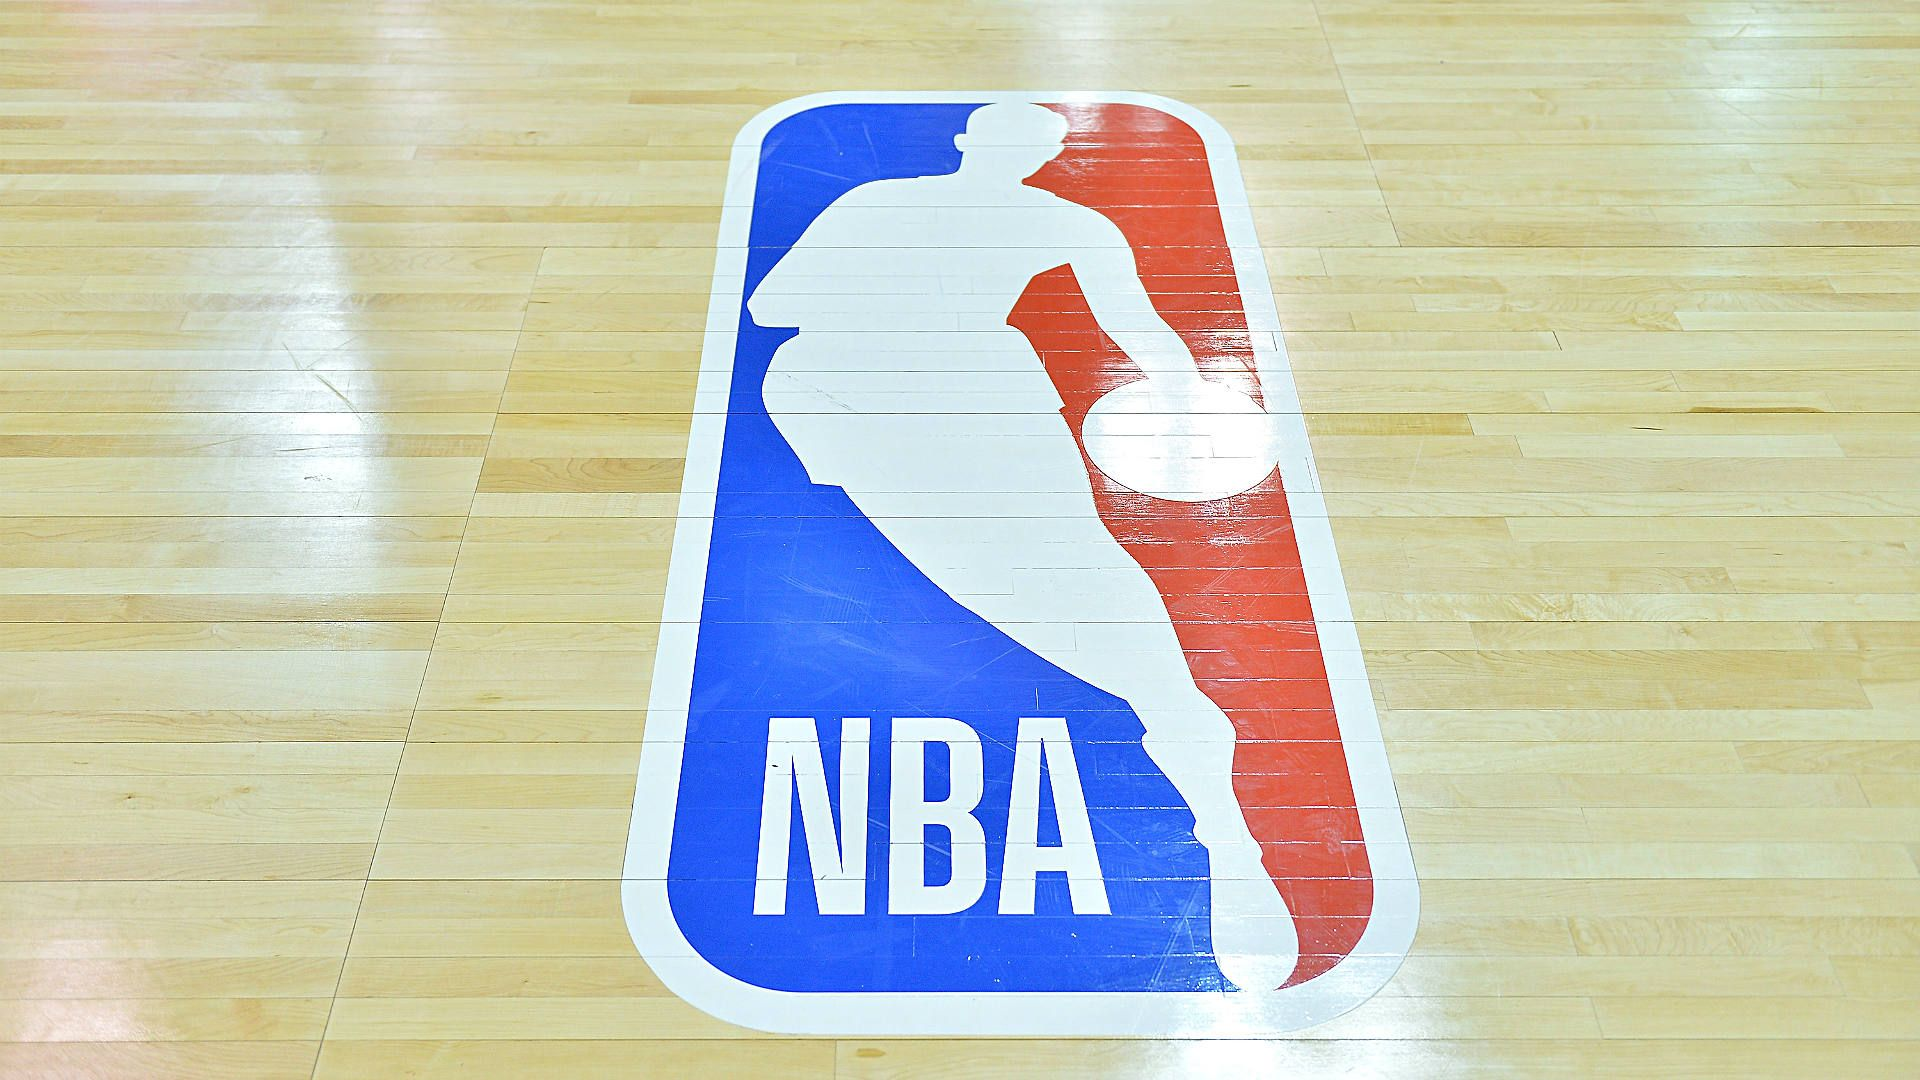 When Will The Nba Return In 2020 Key Dates Schedule More To Know About Season Restart In Orlando After Nearly Three Months Wit In 2020 Nba Nba Teams Inside The Nba